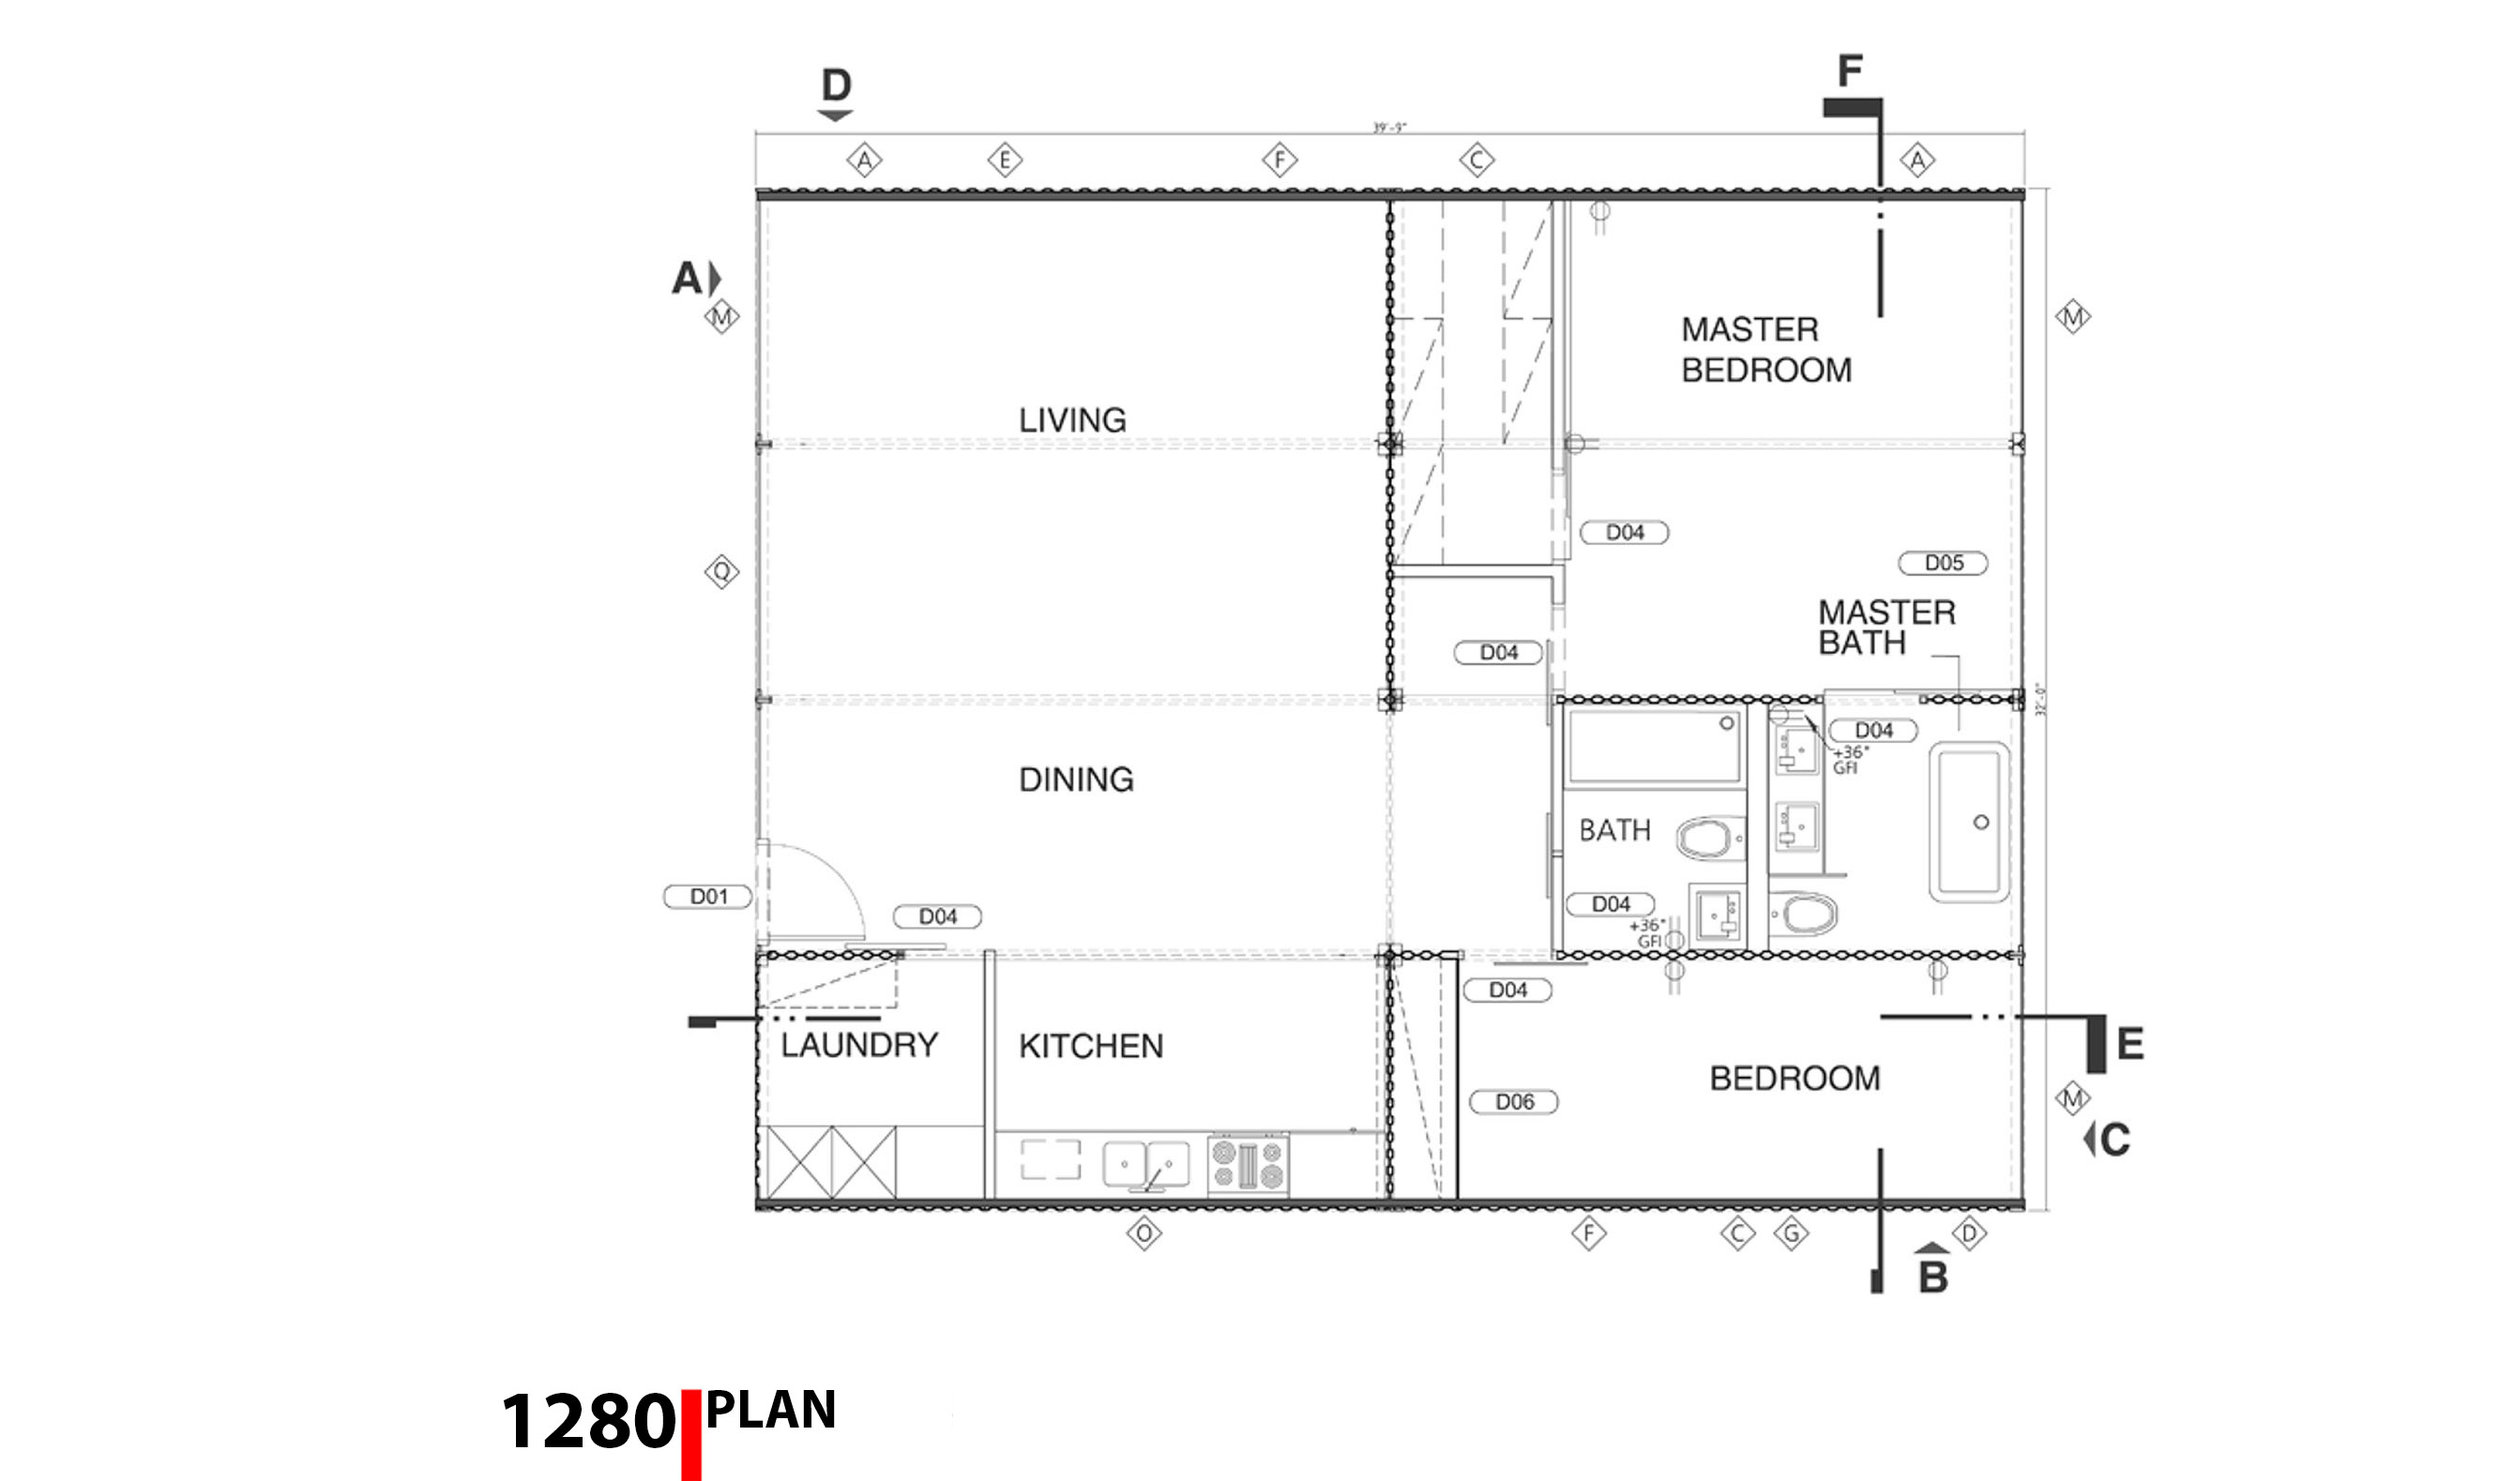 mod housing plan 1280.jpg